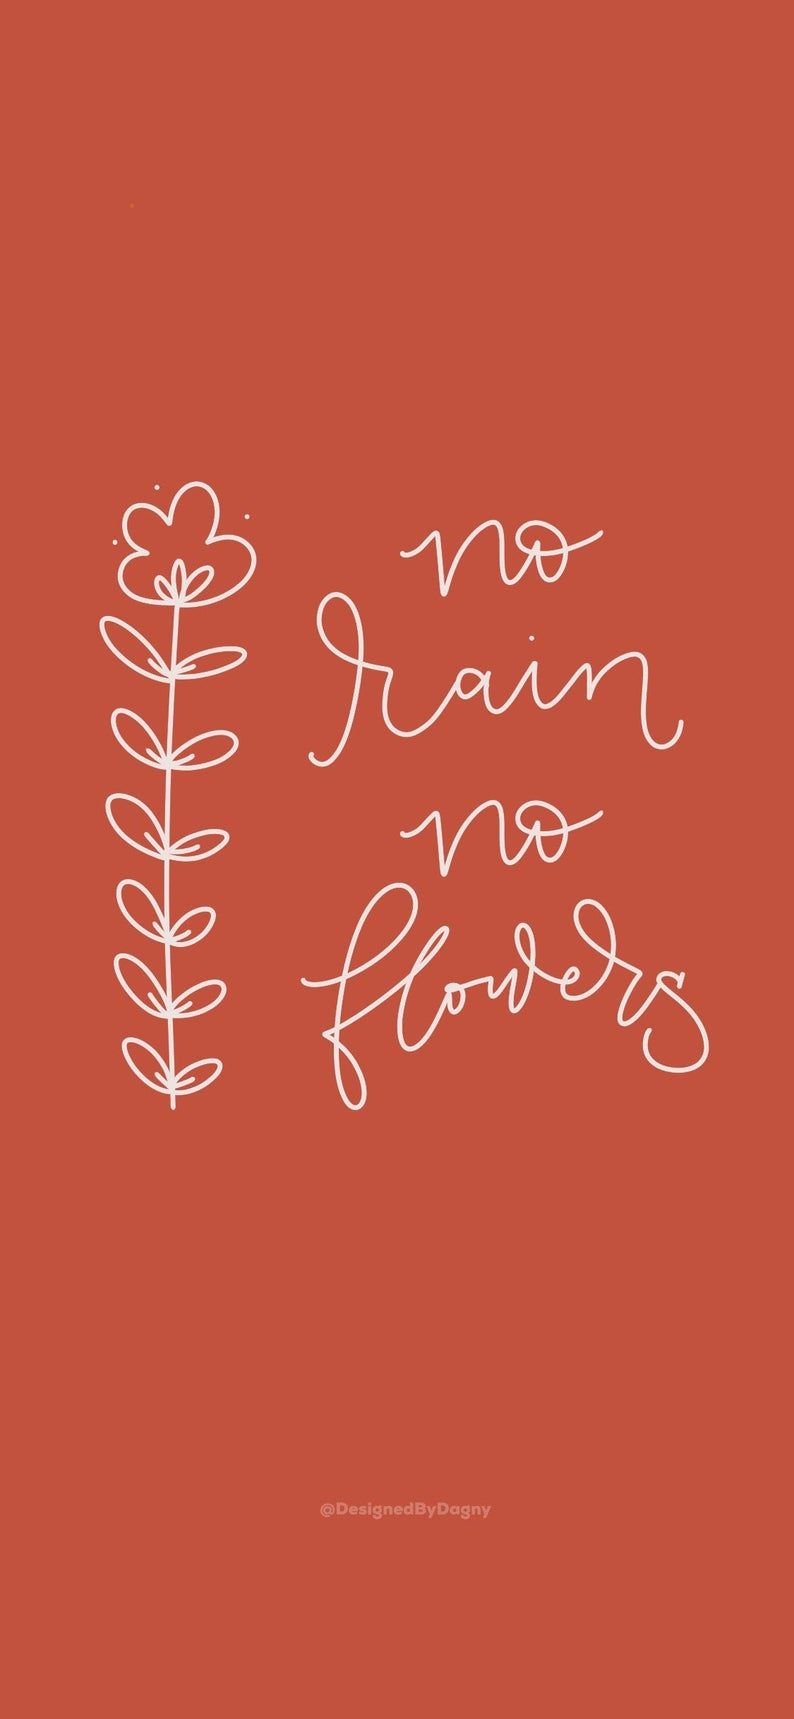 No Rain, No Flowers Inspirational iPhone Wallpaper, Cell Phone Wallpaper, phone background, Mobile Phone Wallpaper, iPhone background